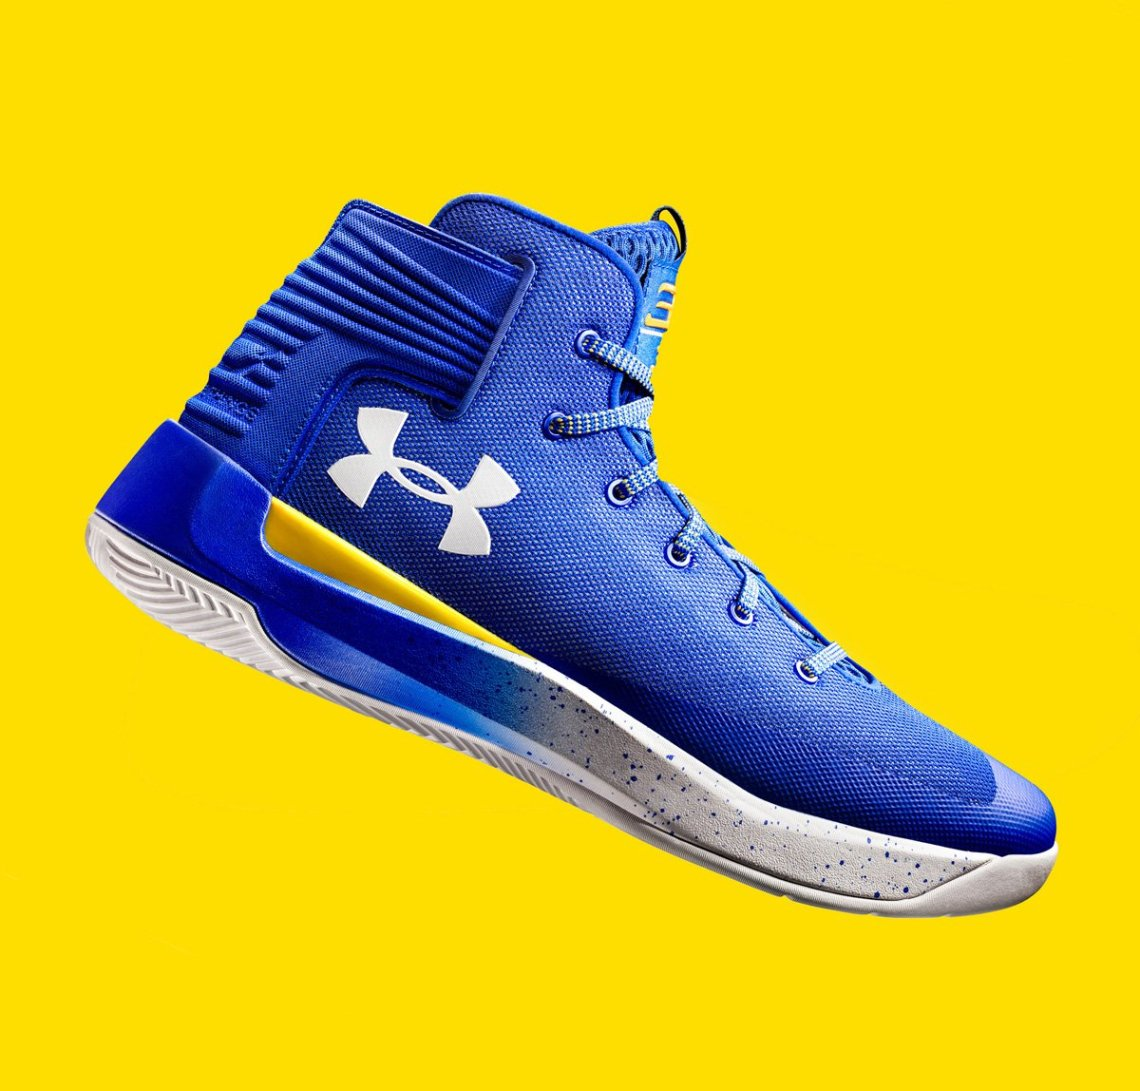 8f22131c77 Just The Facts // Inside Stephen Curry's Under Armour Curry 3Zer0 ...